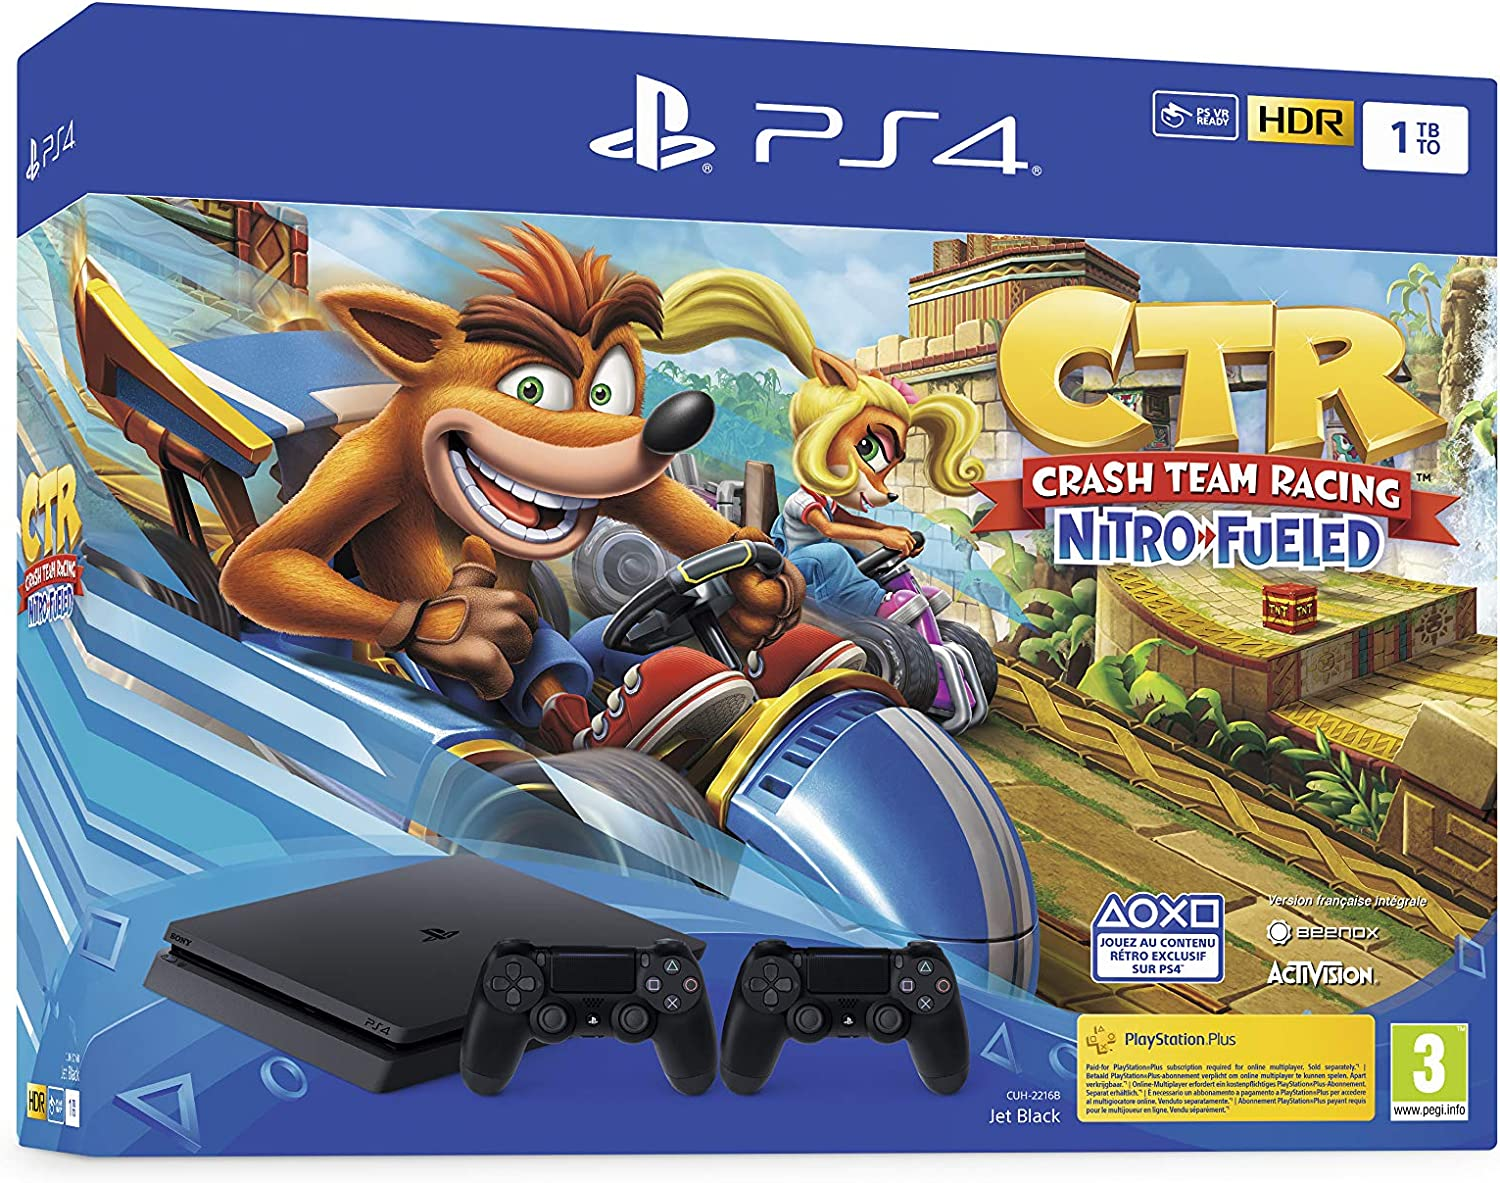 PS4 Slim 1 To F noir avec Crash Team Racing et 2nd Dual Shock 4 Noire V2 [Importación francesa]: Amazon.es: Videojuegos